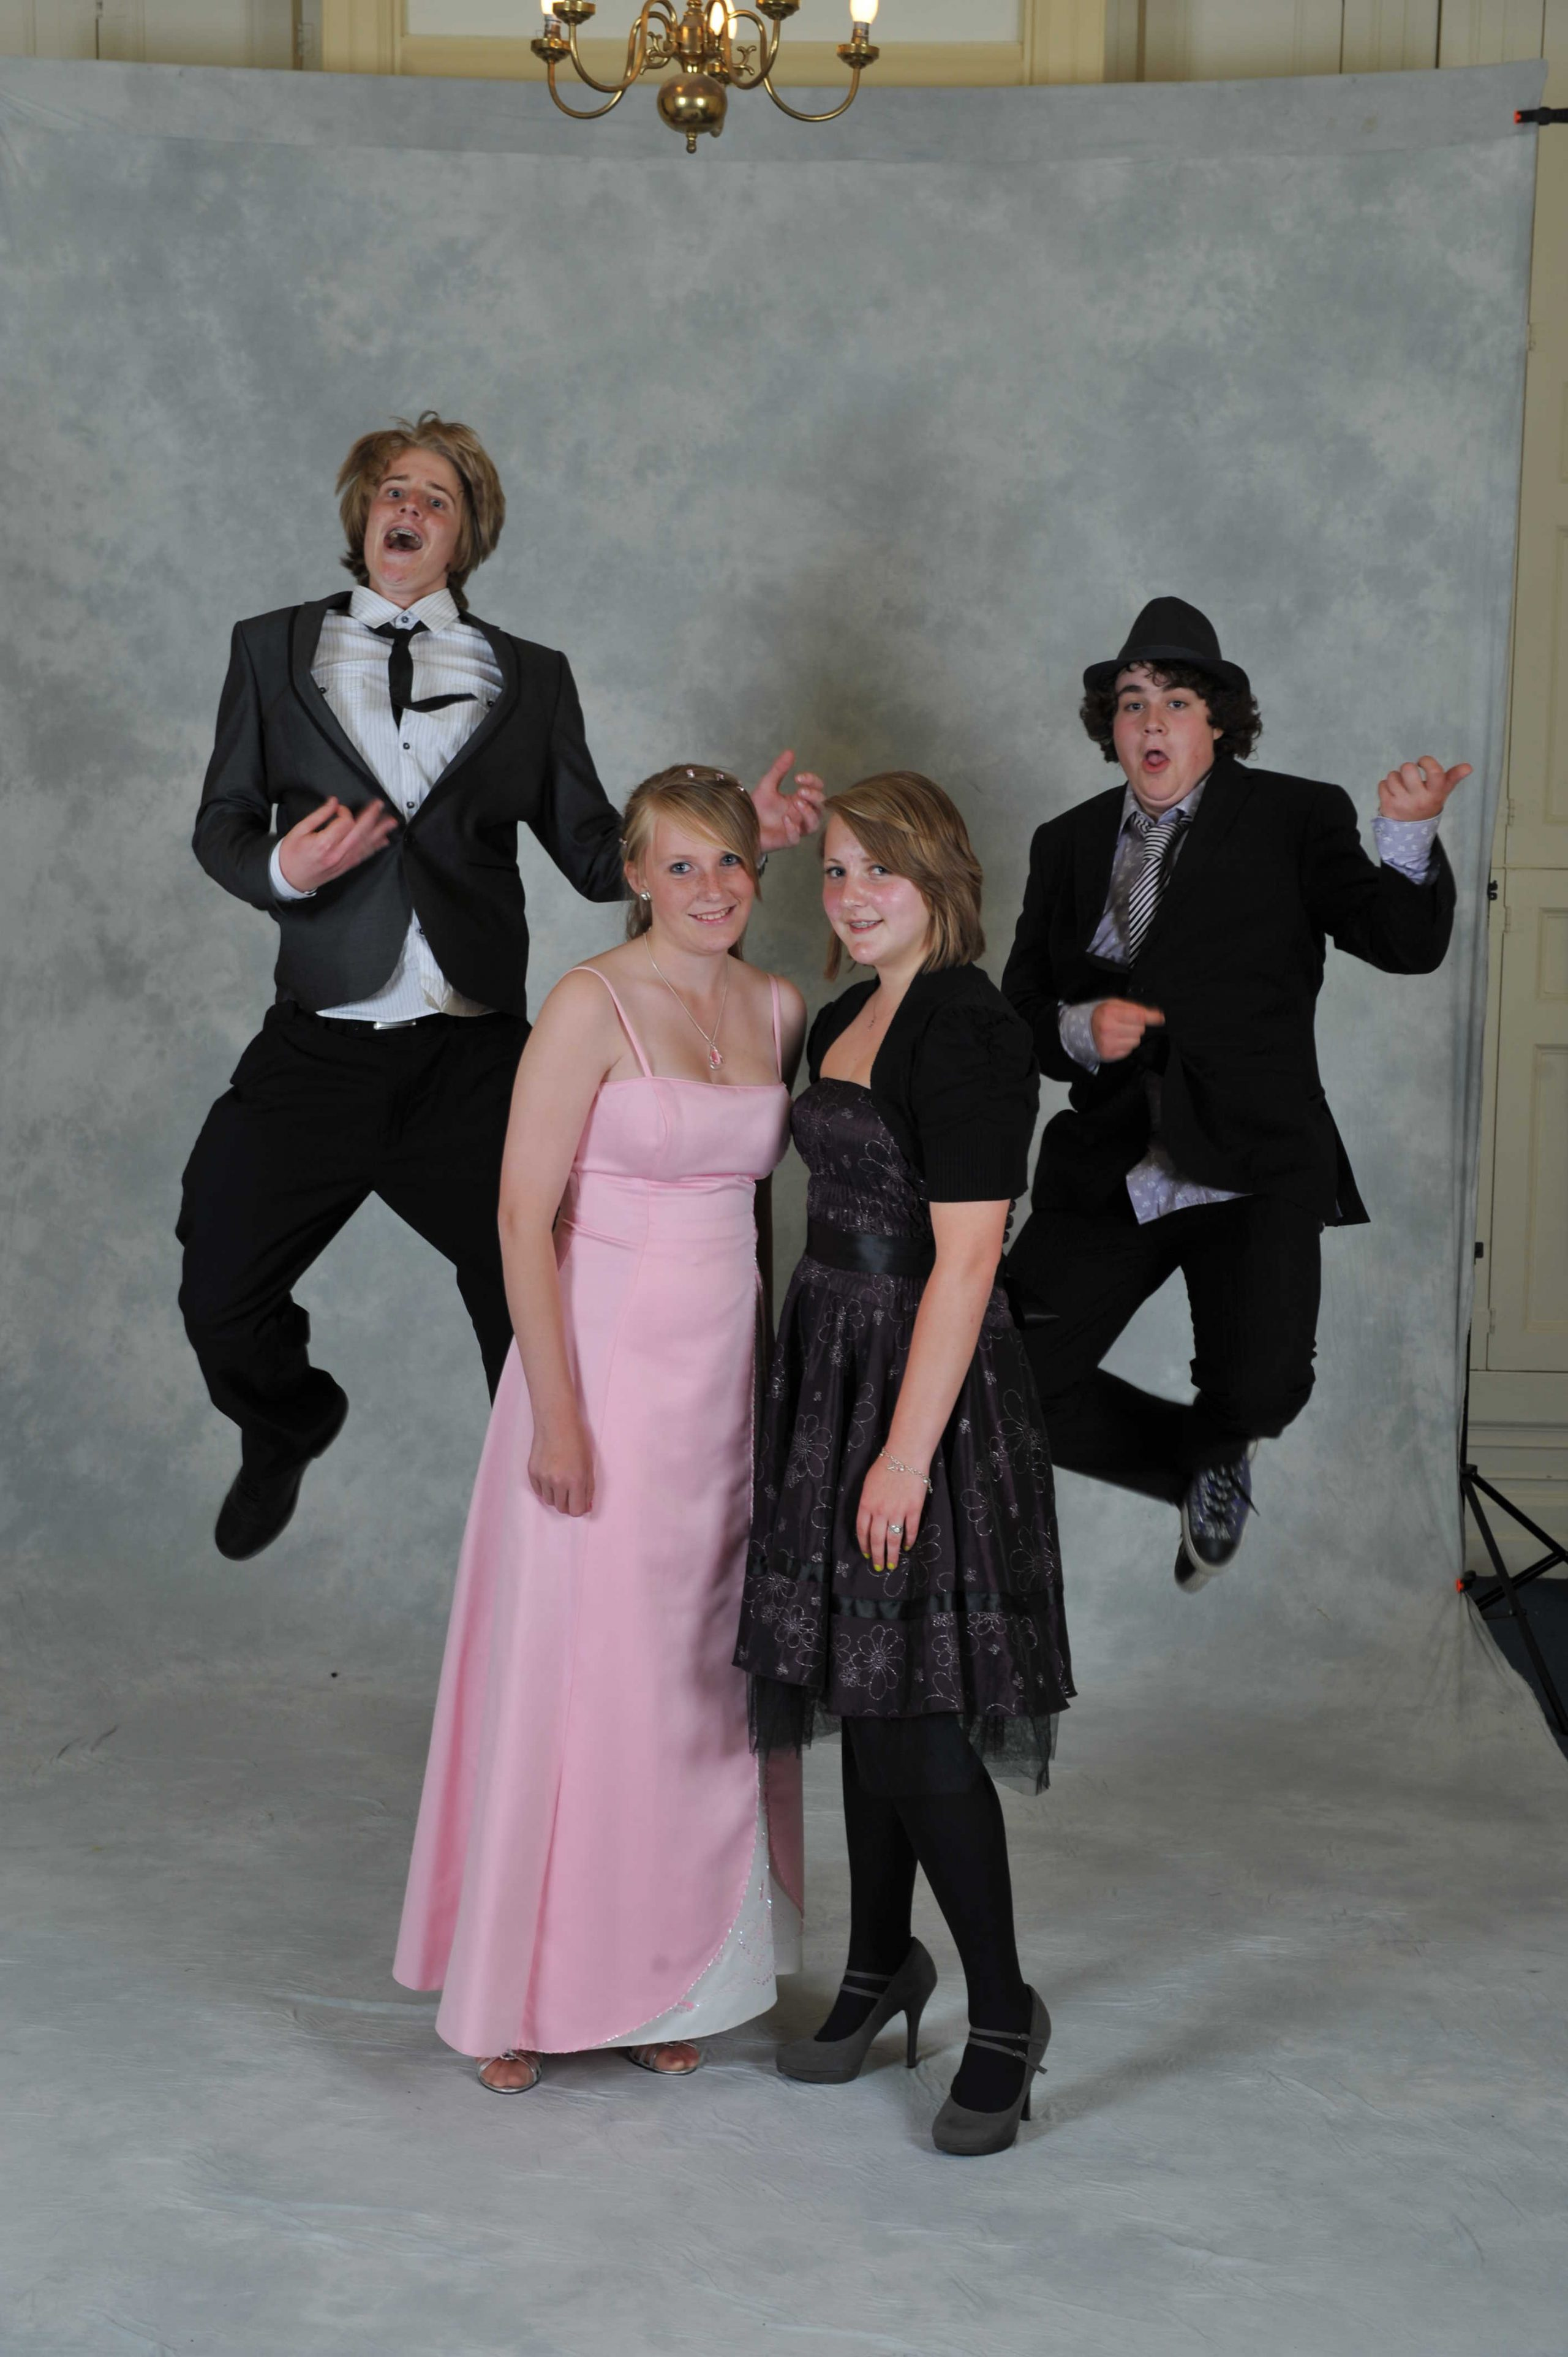 Dorset Prom Photographer Purbeck School Prom 2012 Kingston